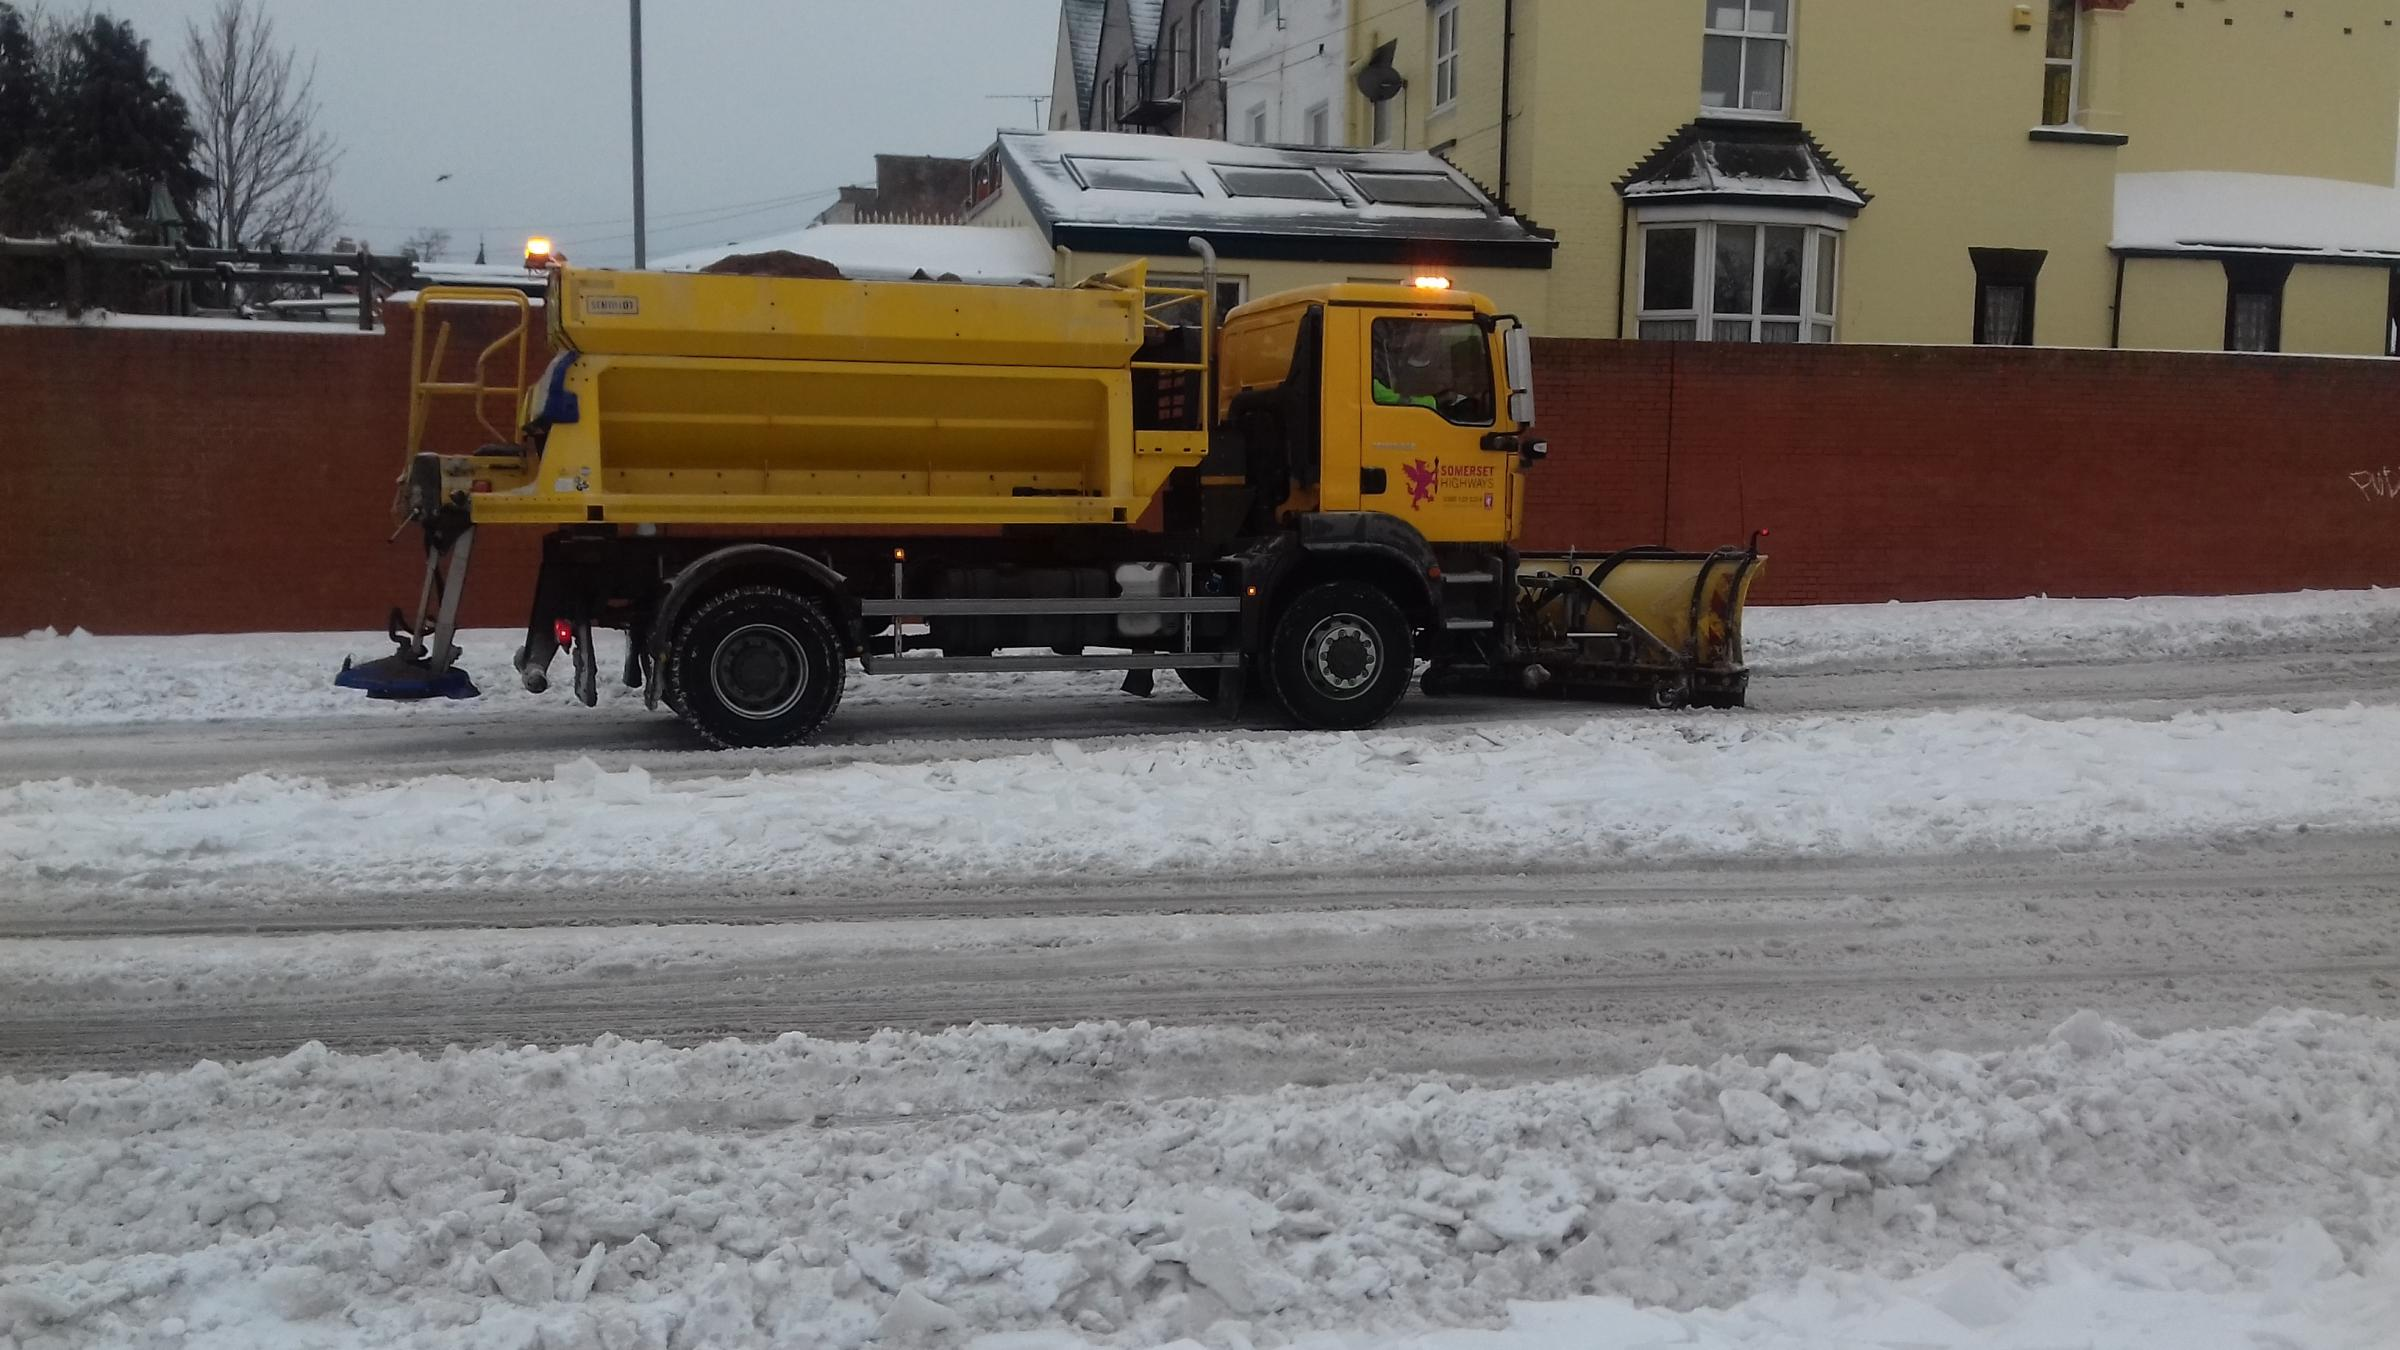 GRITTERS: One of the vehicles during the snow in March 2018